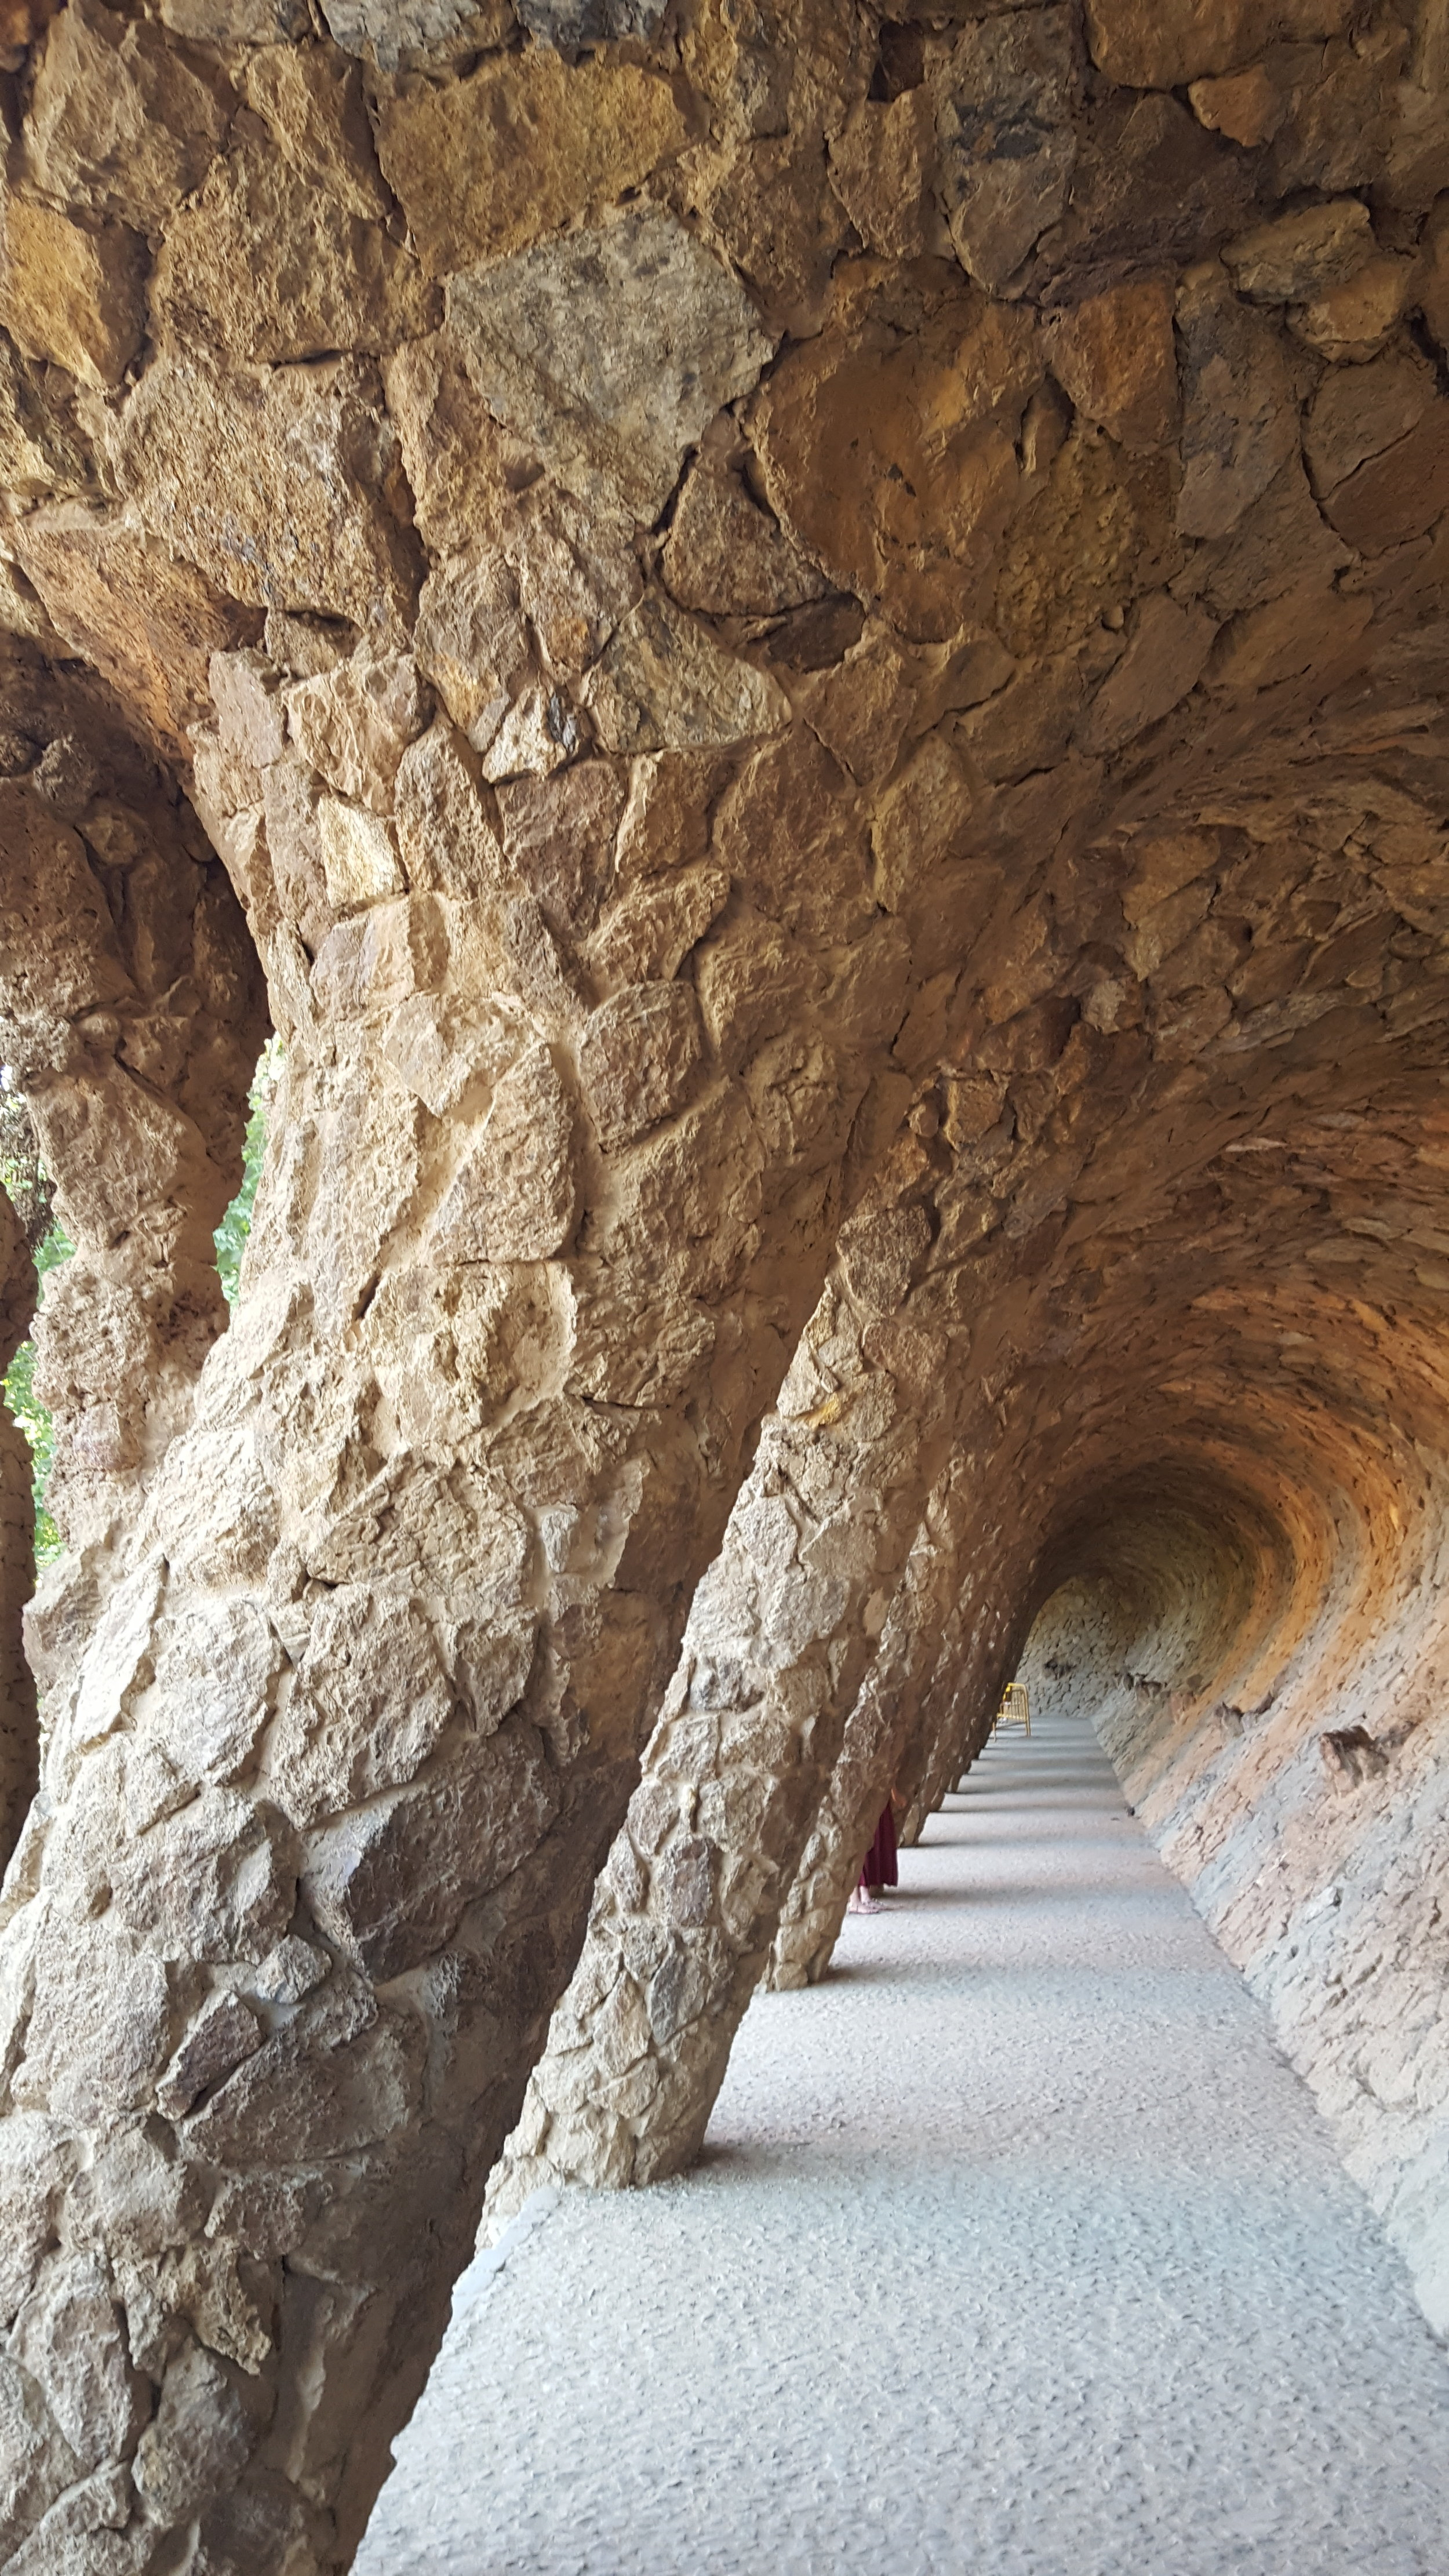 On the grounds of Park Guell